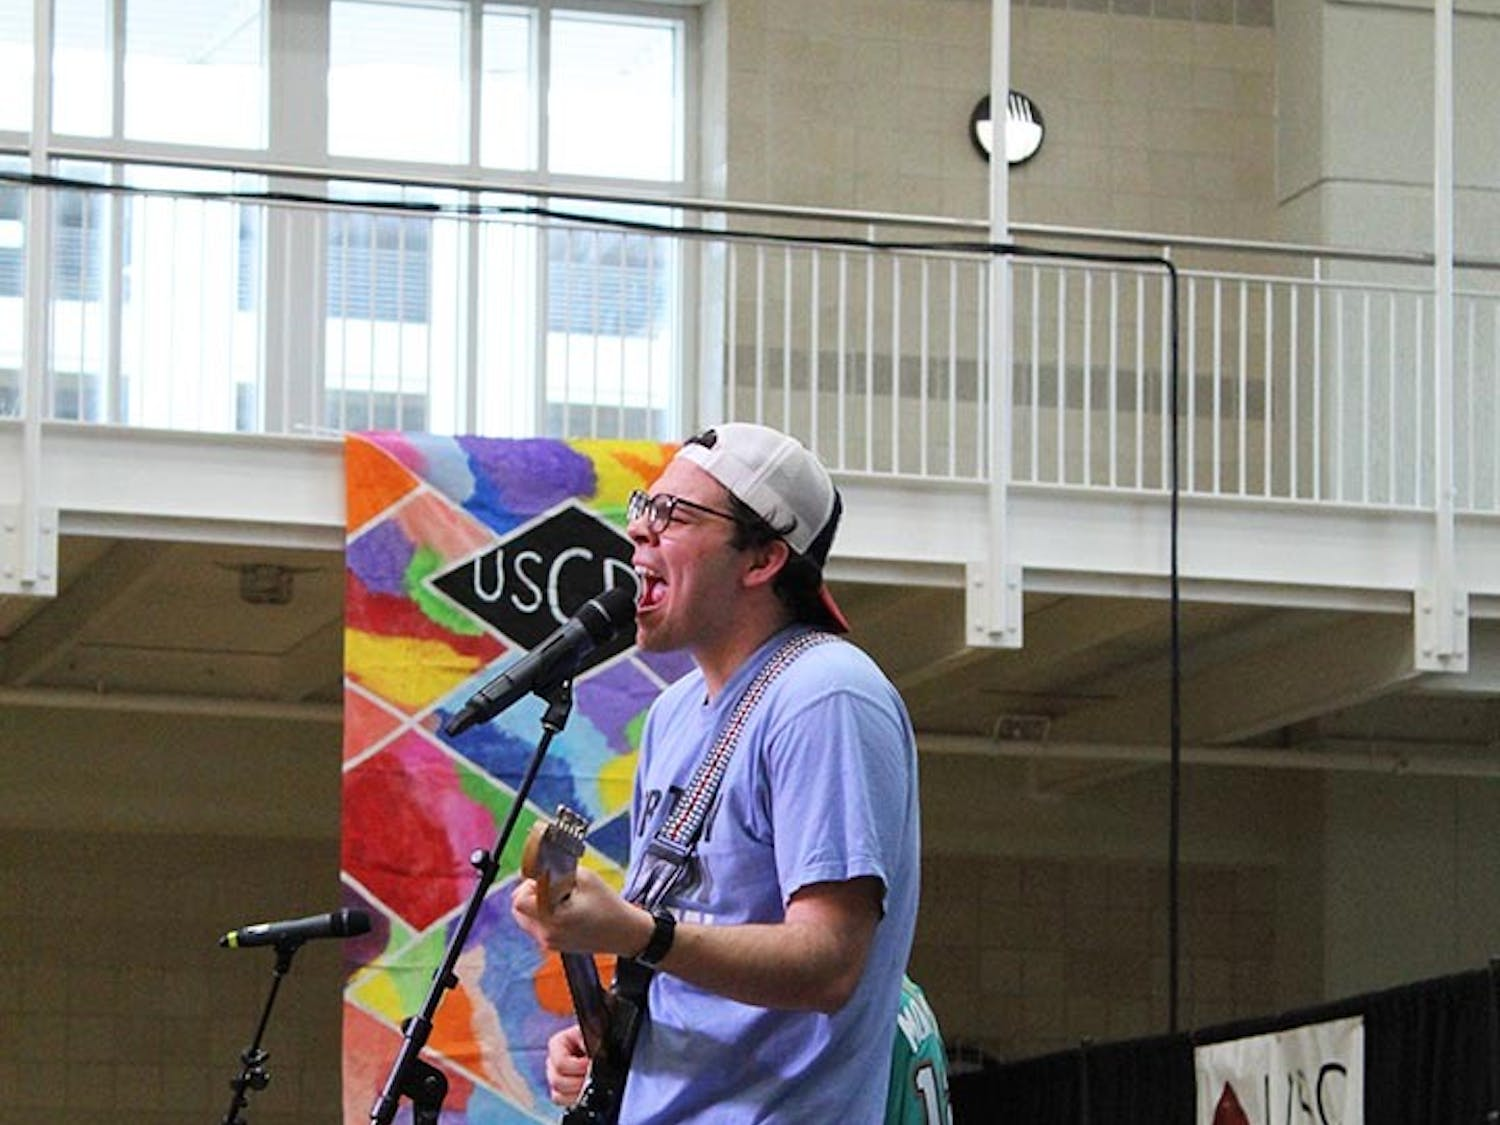 The band Tripping on Bricks performs for the crowd at Dance Marathon while the